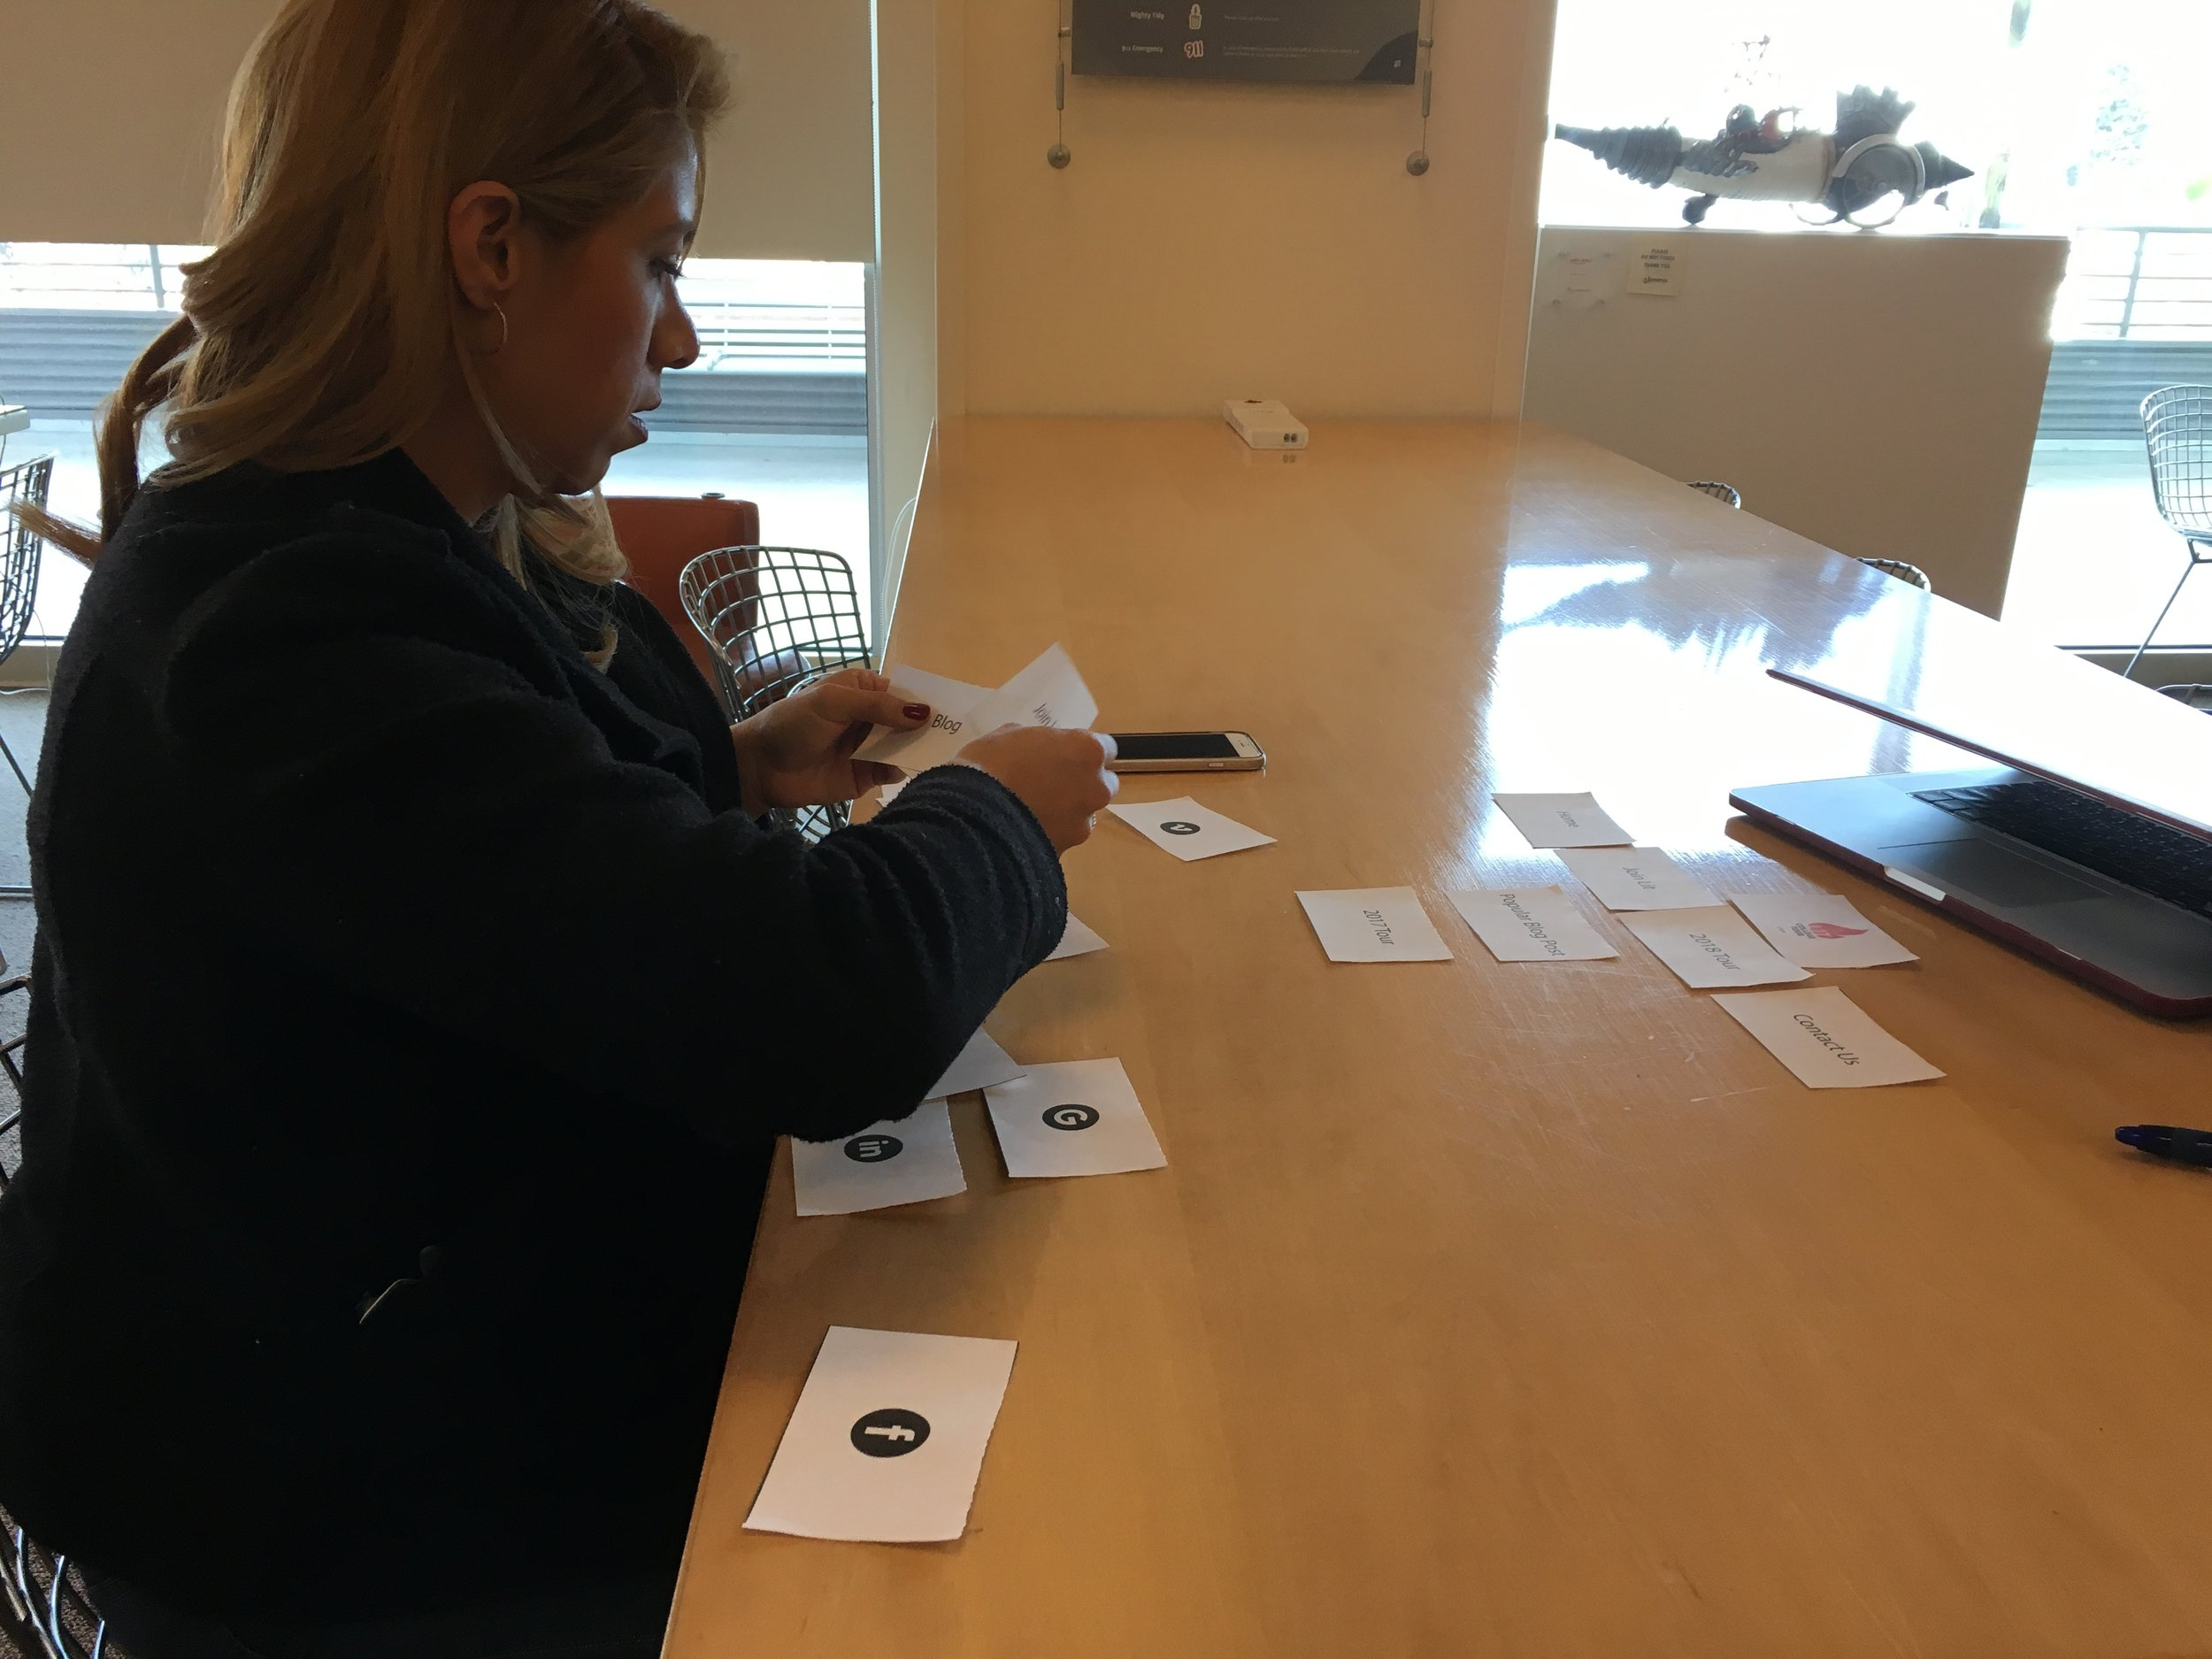 User performing a card sort